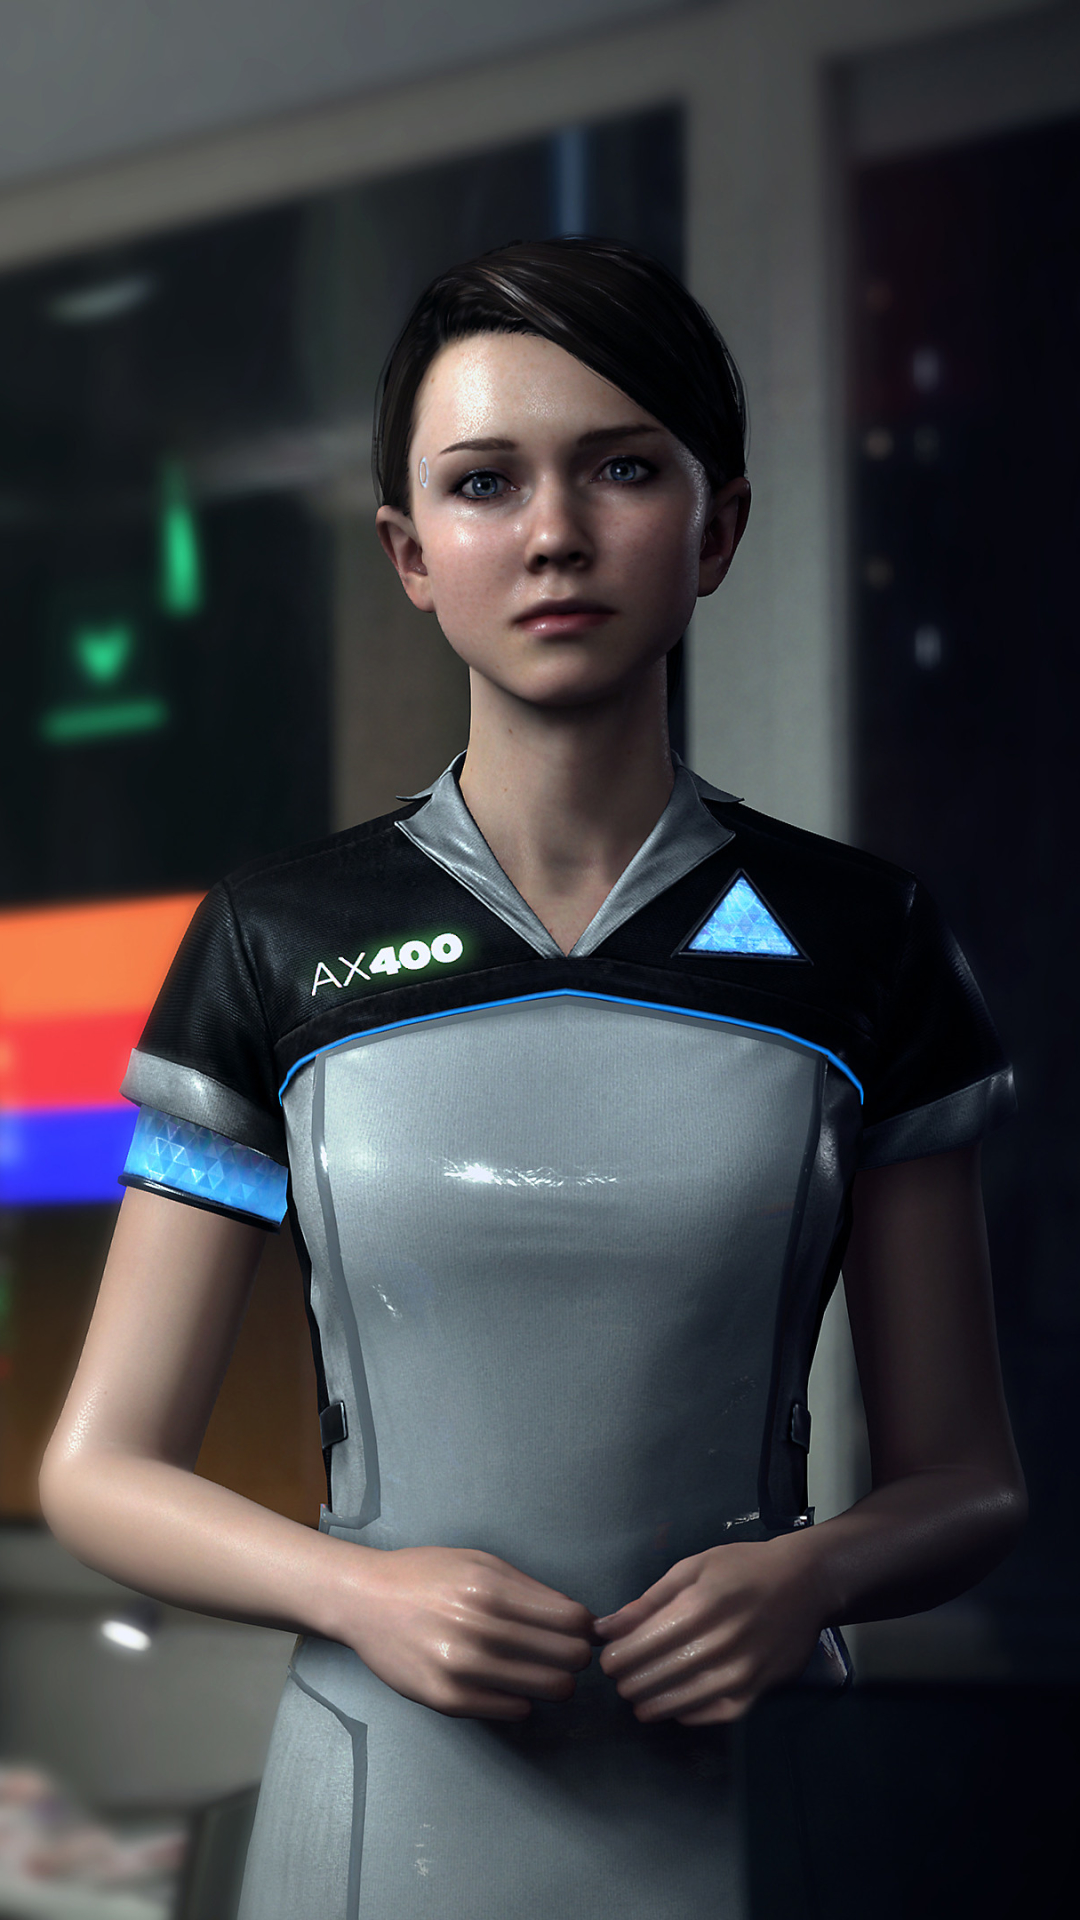 Video Game Detroit Become Human 1080x1920 Wallpaper Id 727269